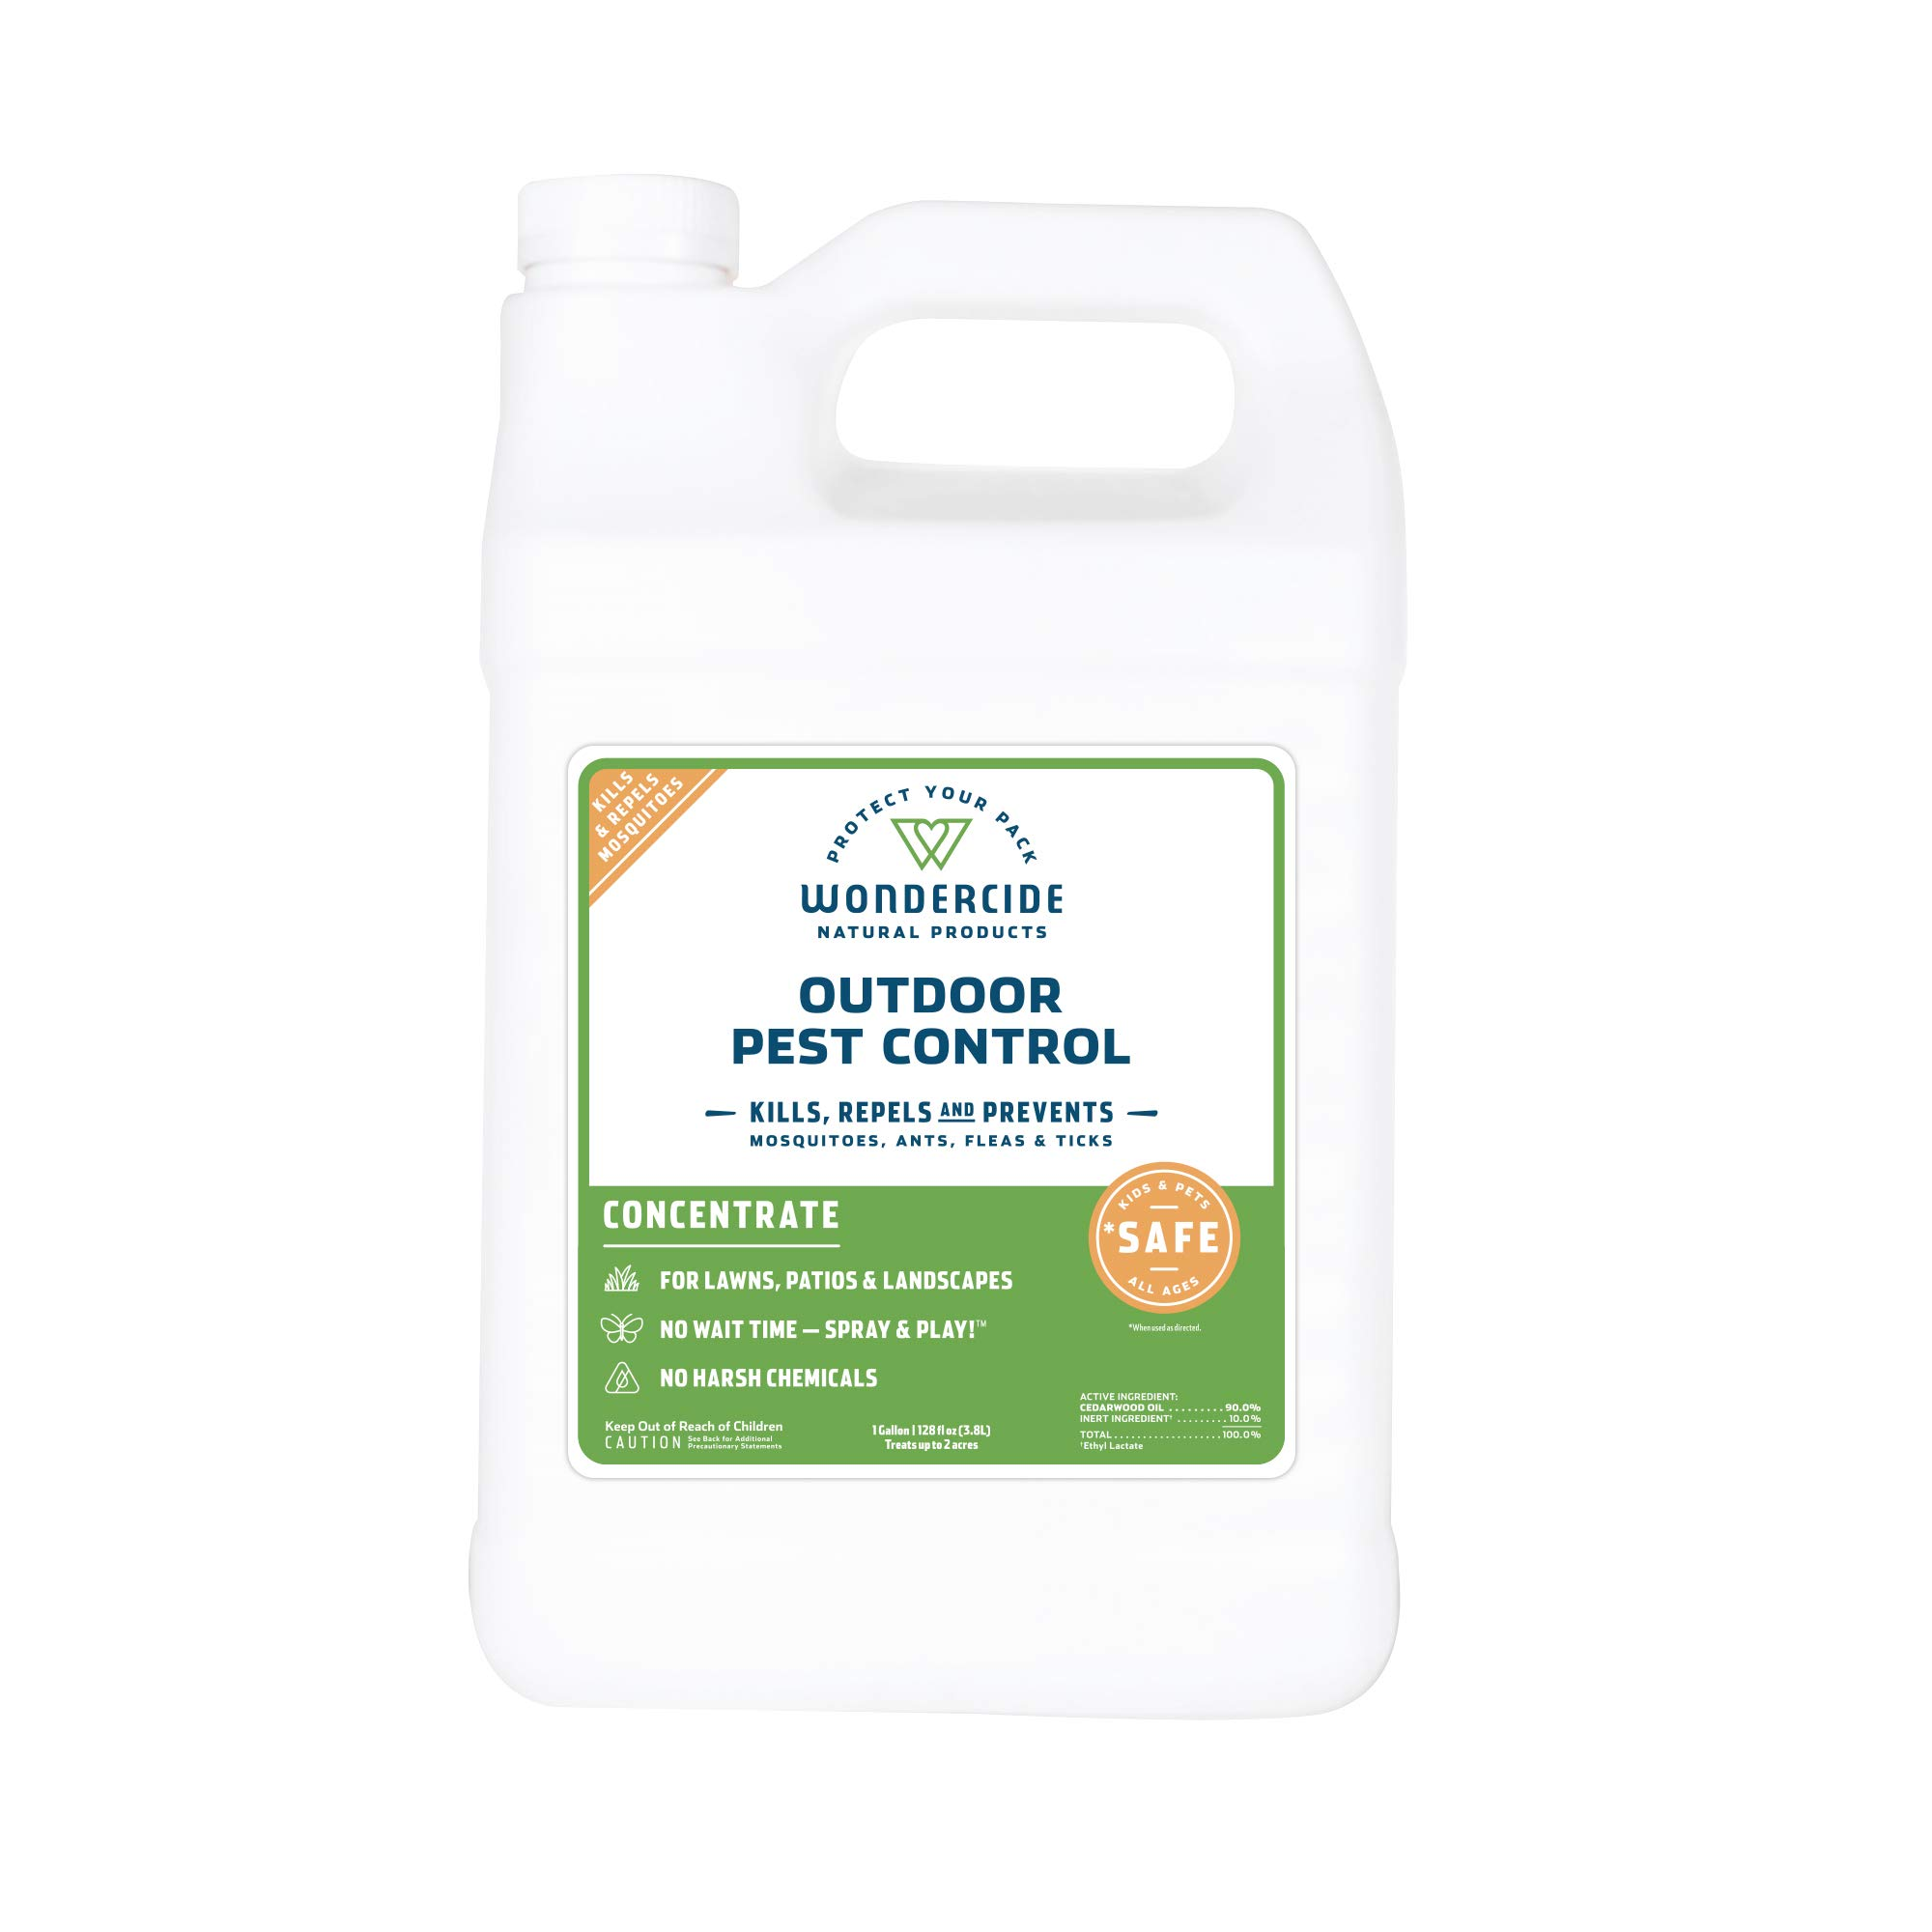 Wondercide EcoTreat - Natural Outdoor Pest Control Concentrate - 1 gal